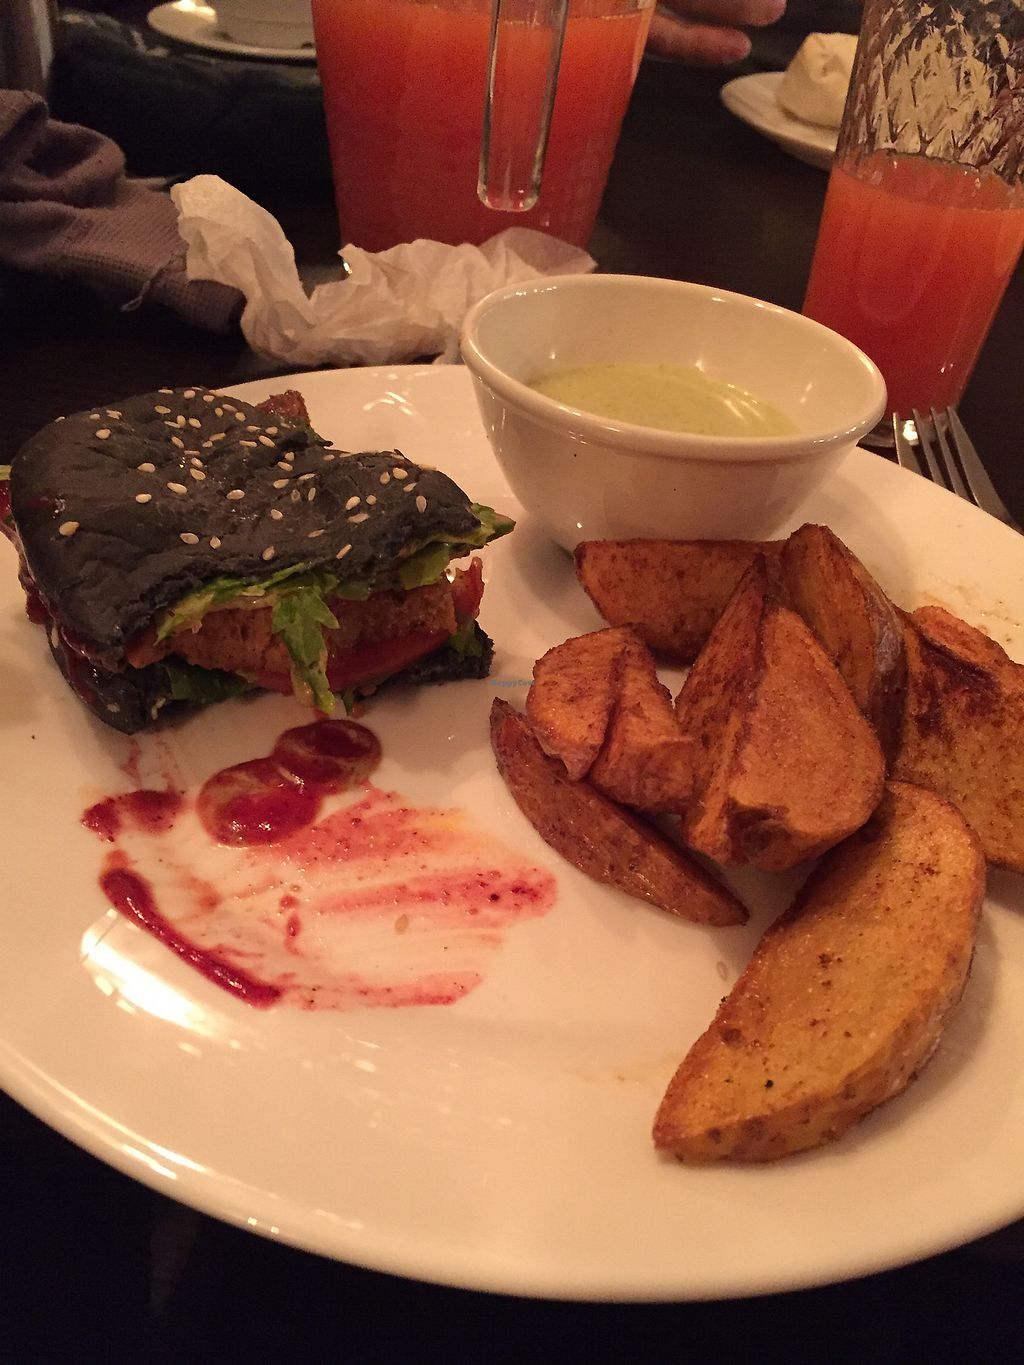 """Photo of Ugol  by <a href=""""/members/profile/LillyHunt"""">LillyHunt</a> <br/>Seitan miniburger and wedges <br/> October 31, 2017  - <a href='/contact/abuse/image/86459/320337'>Report</a>"""